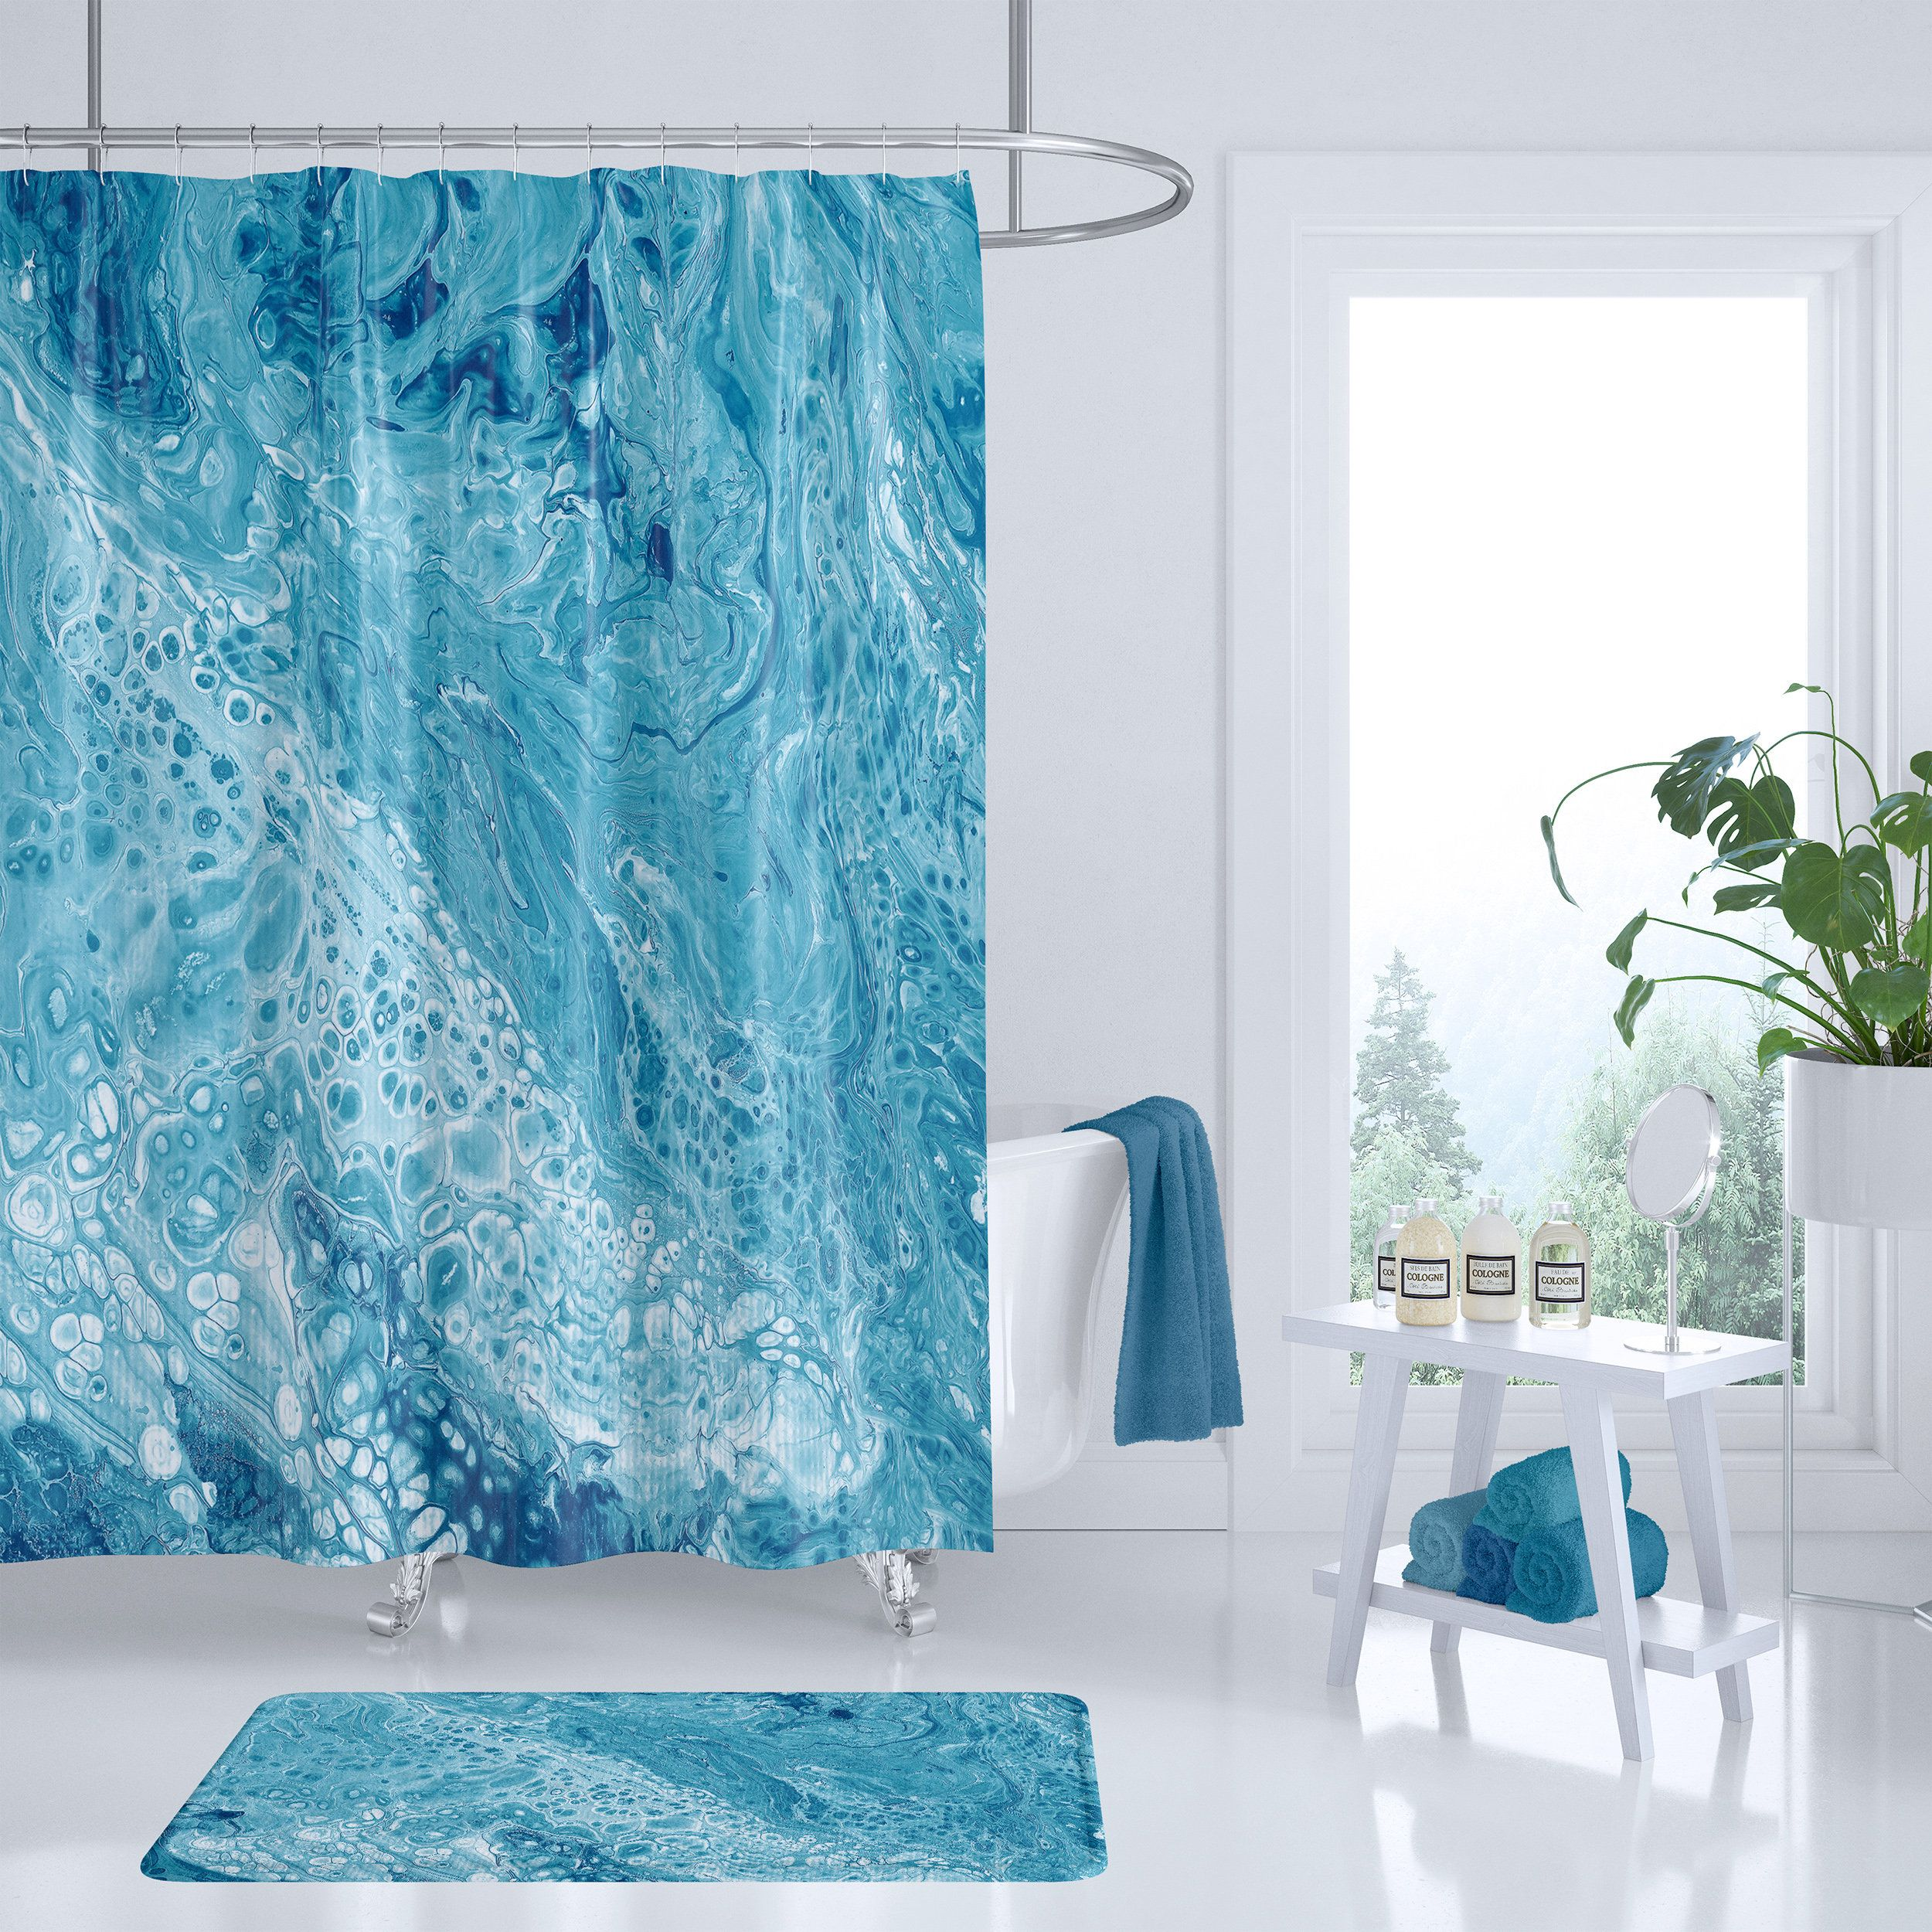 Blue And White Marble Shower Curtain Beautiful Marble Design